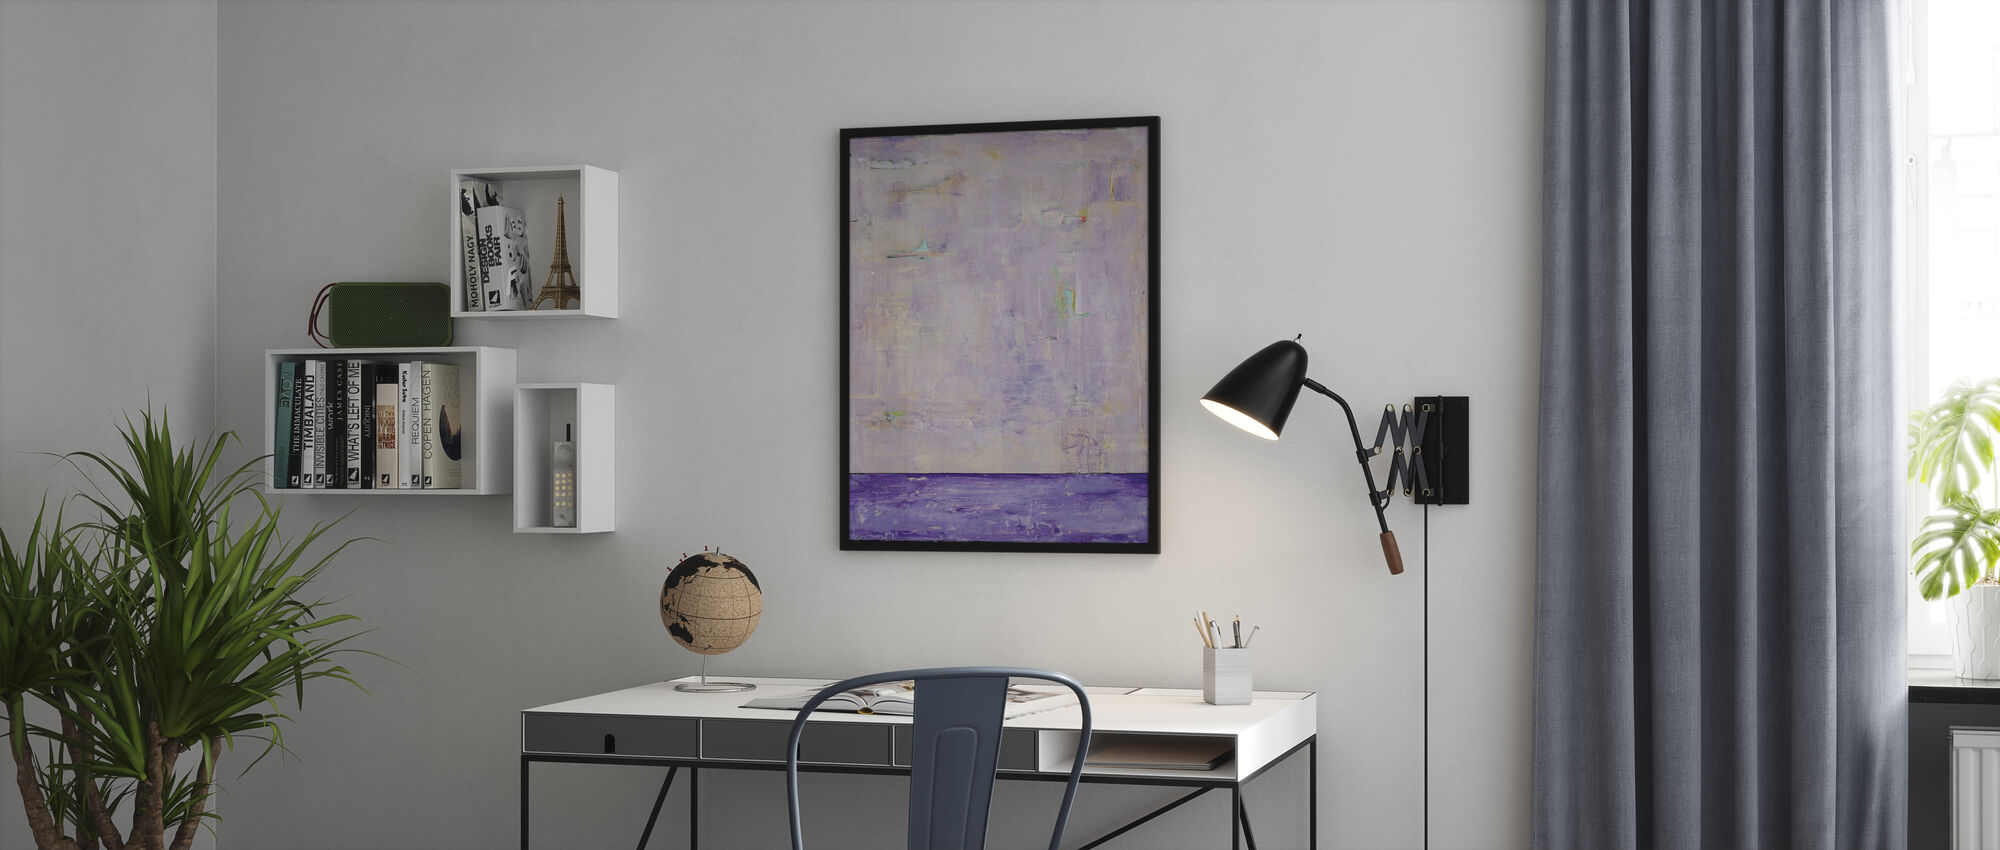 In Keeping - Poster - Office